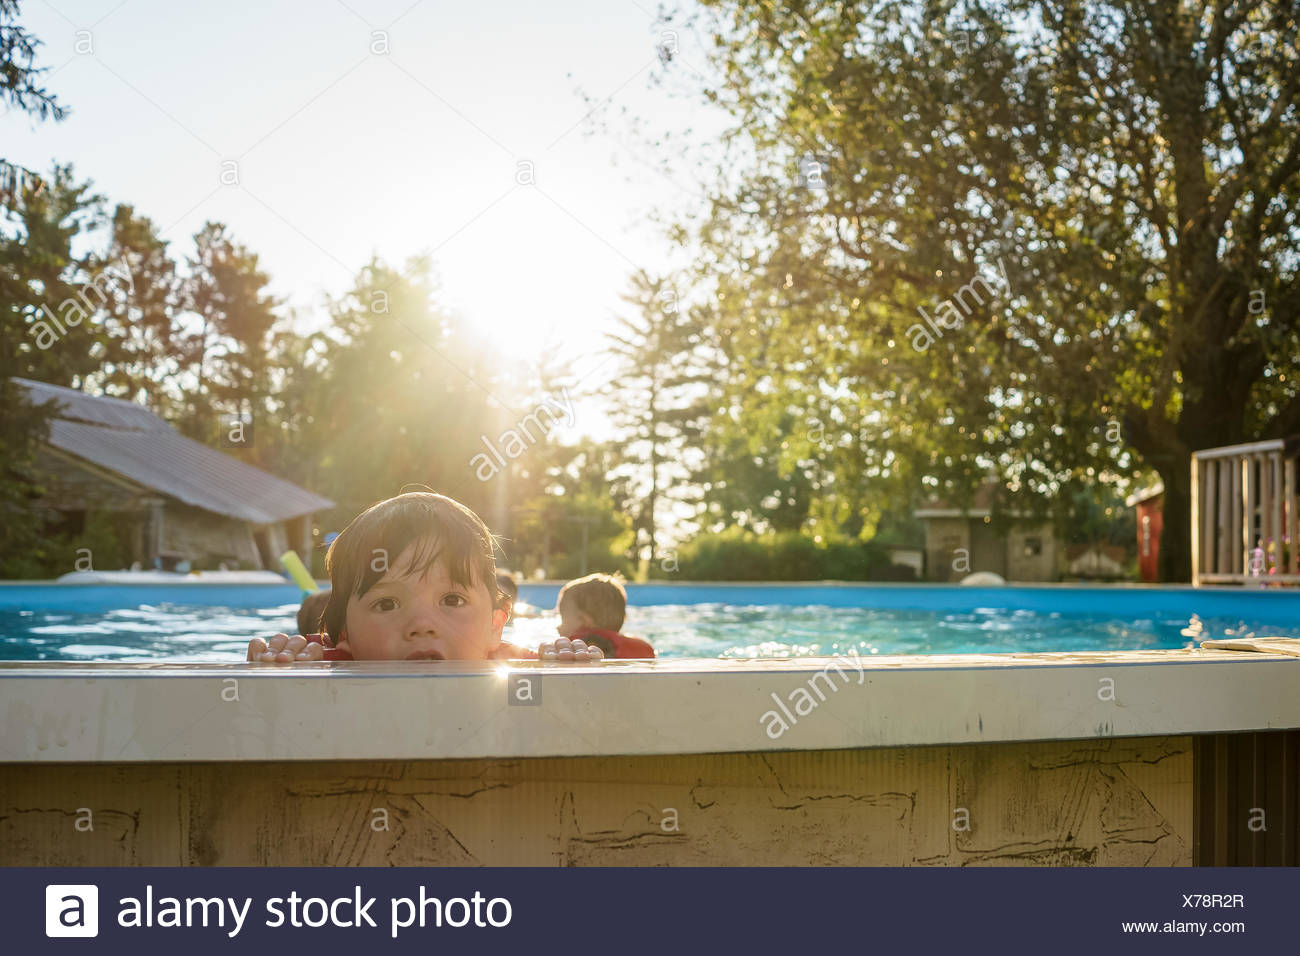 Boy peering over the edge of a swimming pool with siblings in the background - Stock Image